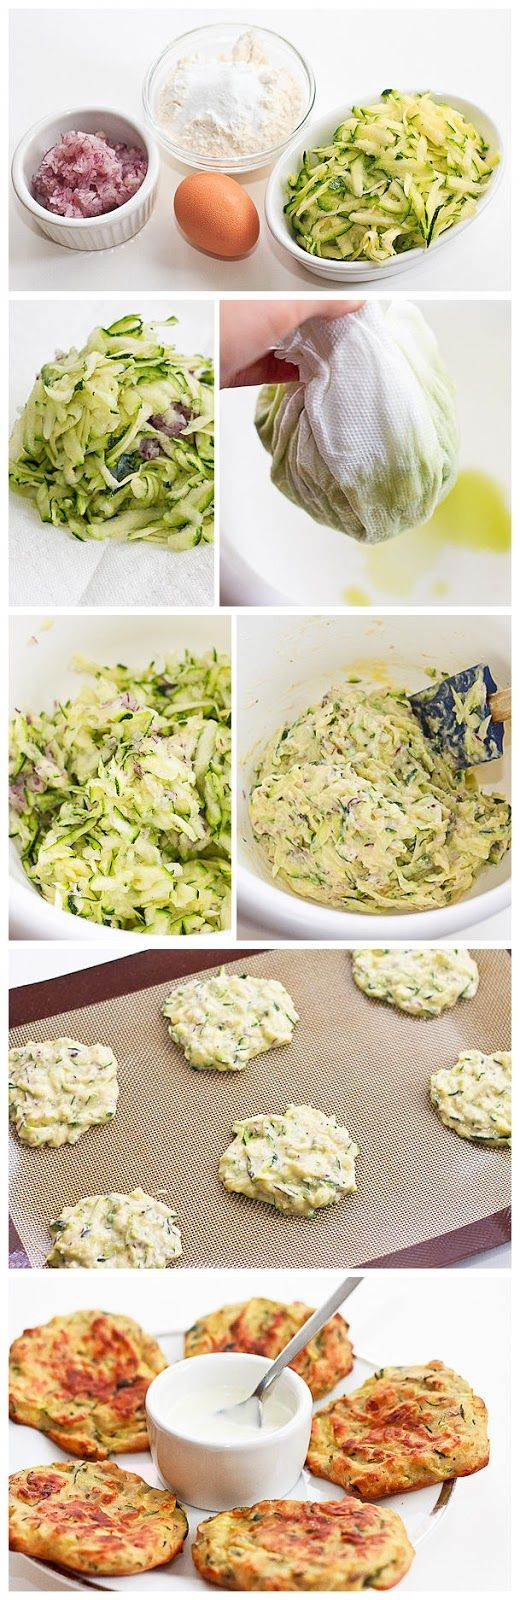 Super Yummy BAKED Zucchini Fritters - Healthy, Can be vegan, vegetarian, gluten free